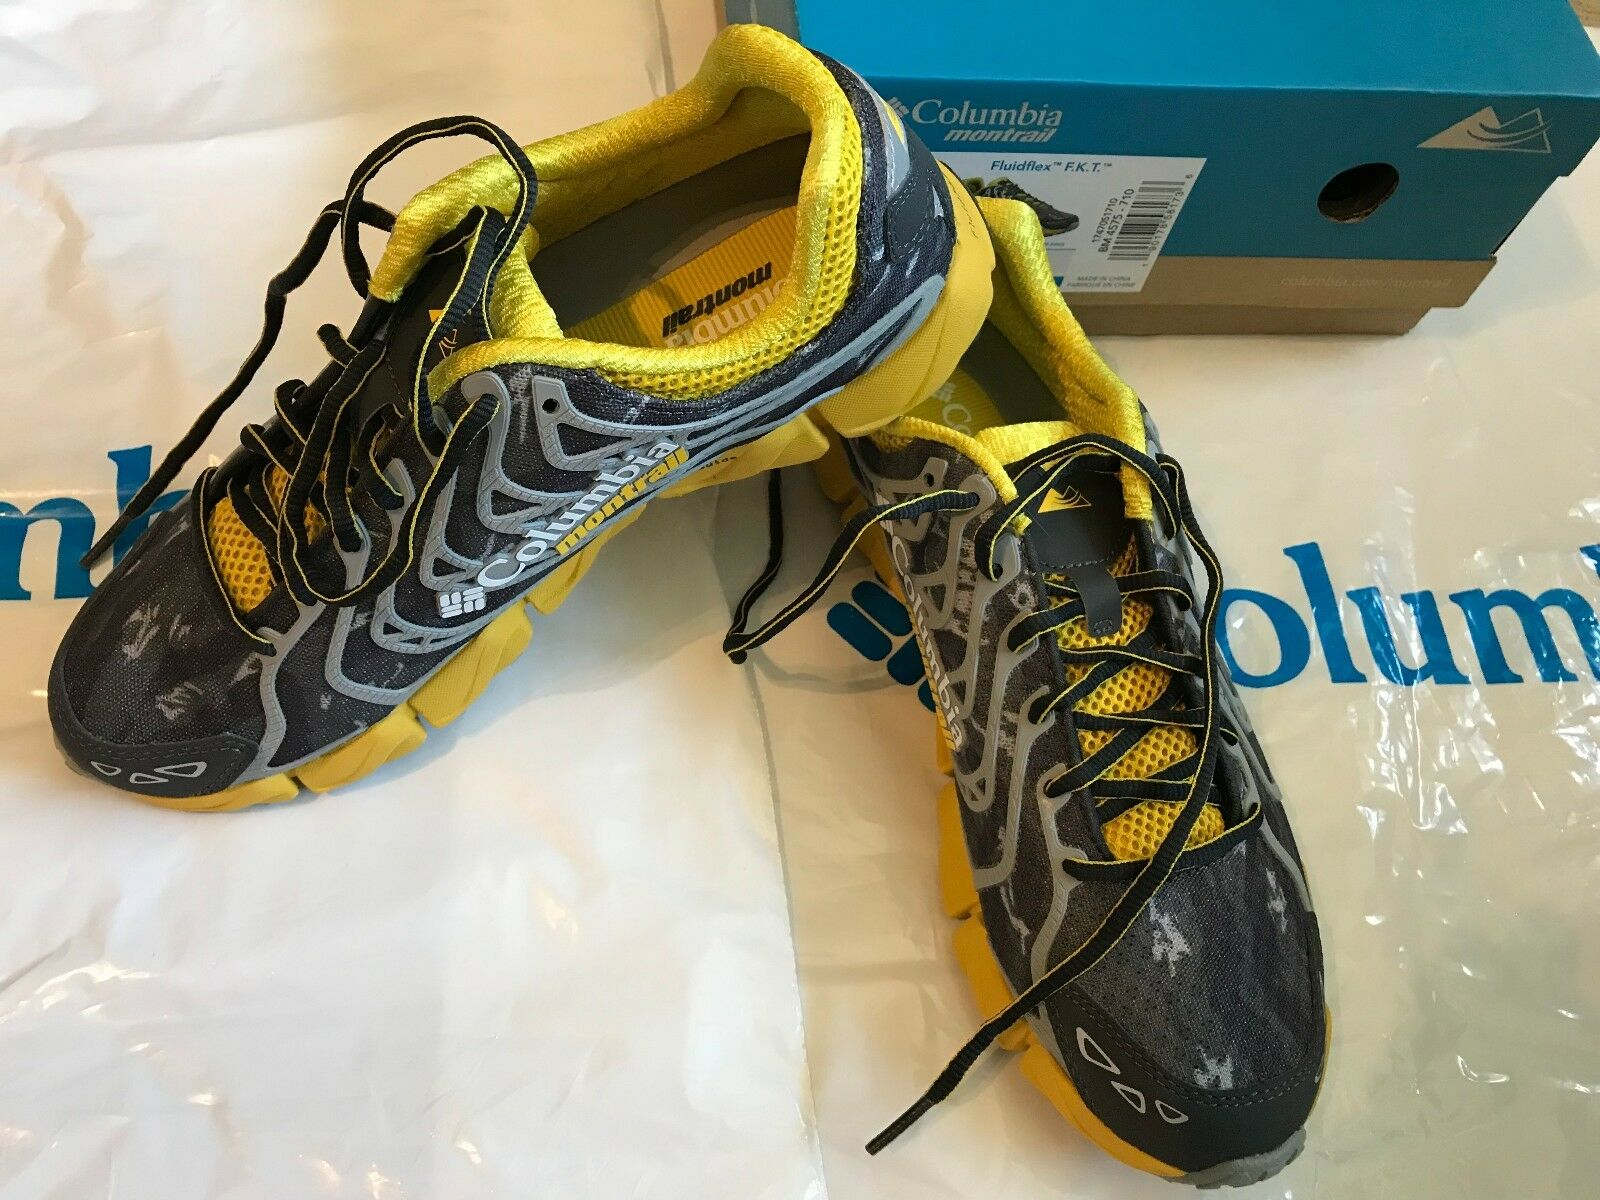 NEW Mens Columbia Montrail Fluidflex FKT Lightweight Trail Running shoes